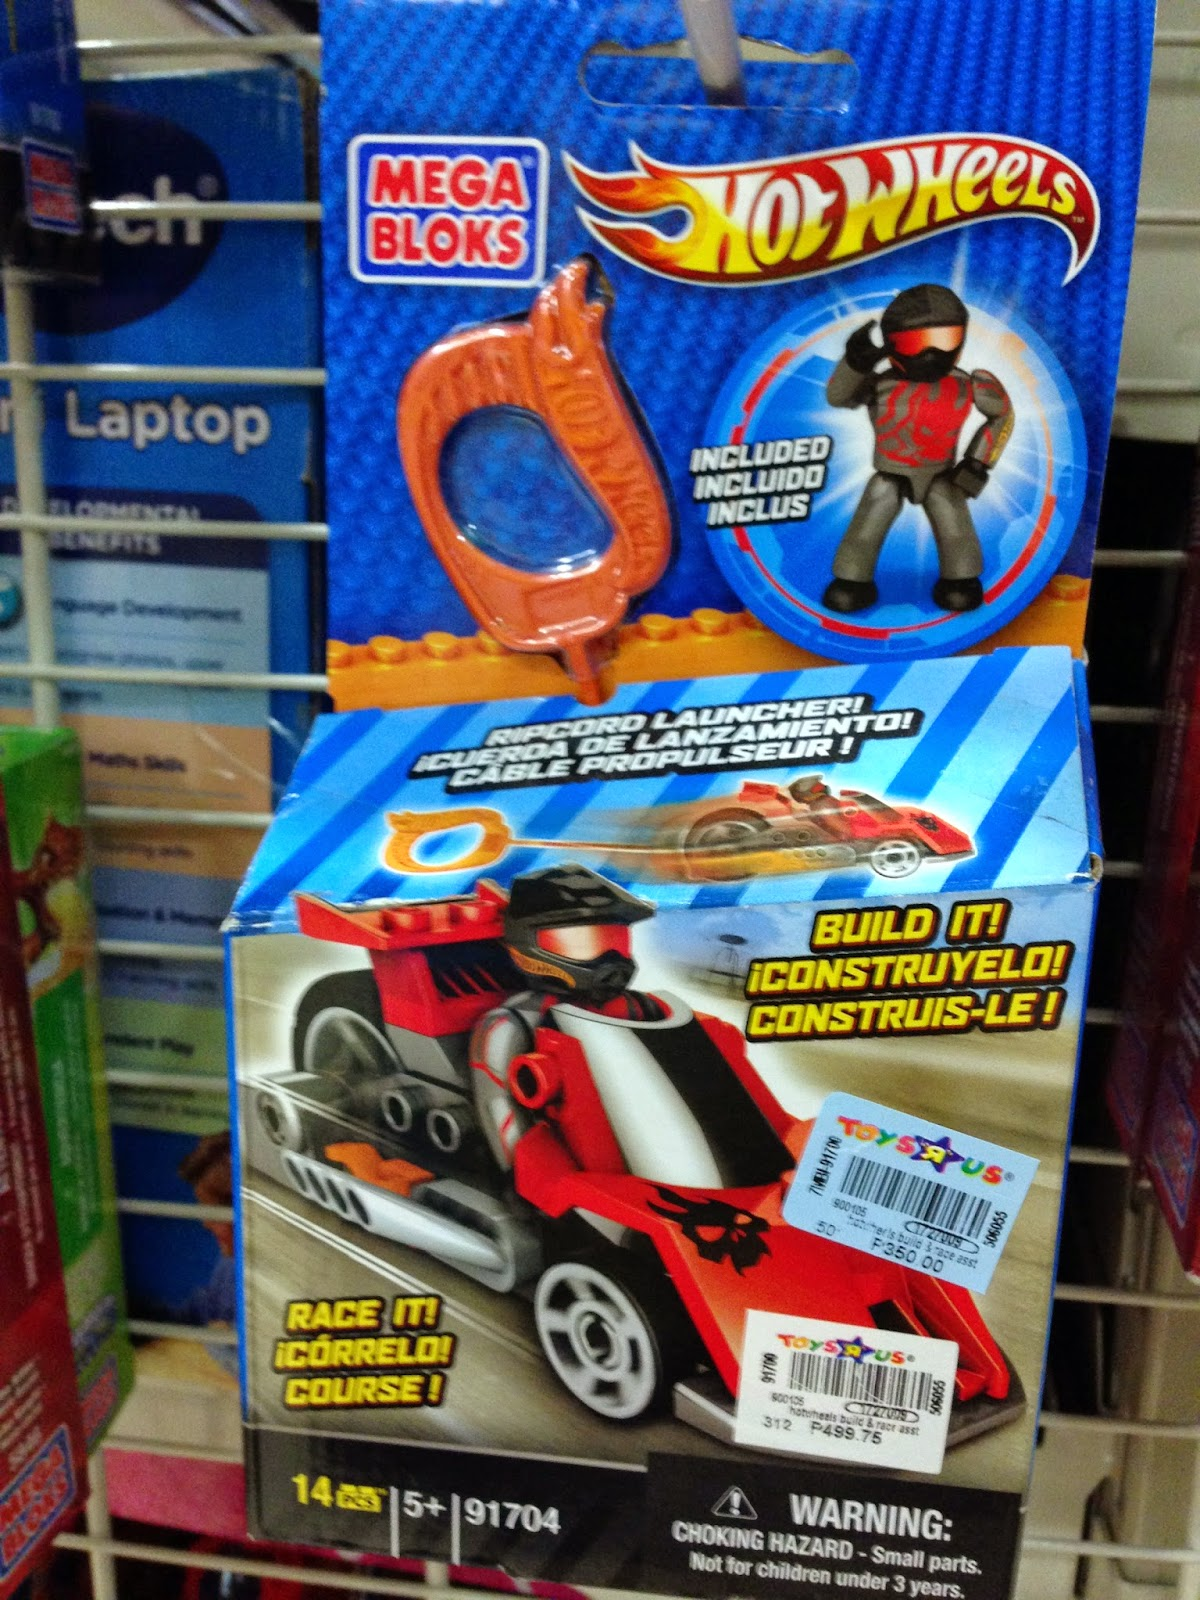 Toy Sale in Manila, Philippines 2015 : Hot Wheels Mega Bloks Surprise Toys on SALE